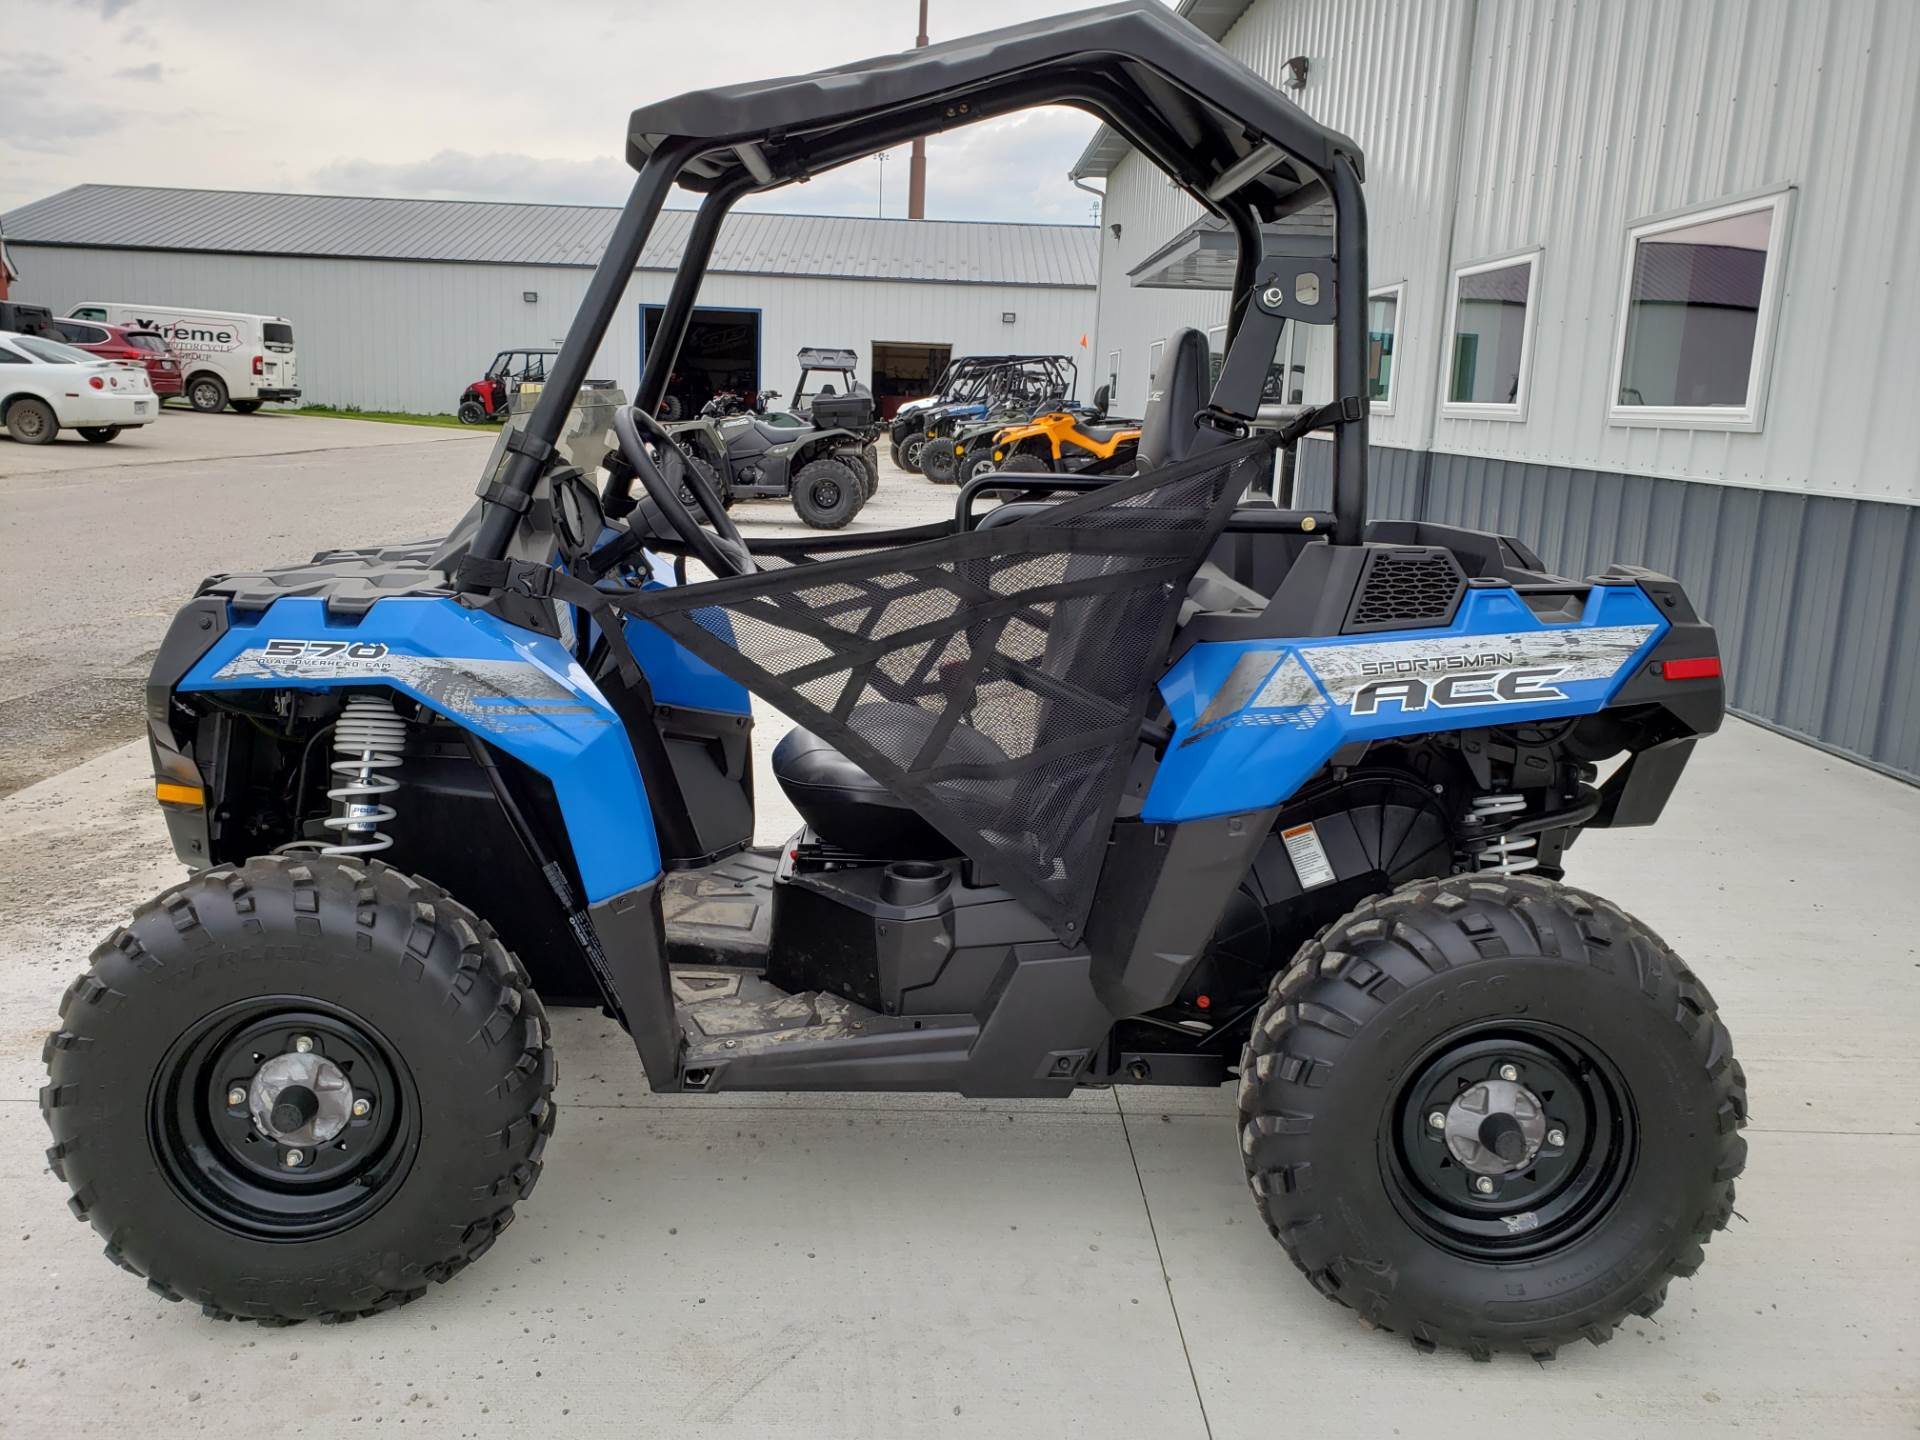 2015 Polaris ACE™ 570 in Cambridge, Ohio - Photo 1